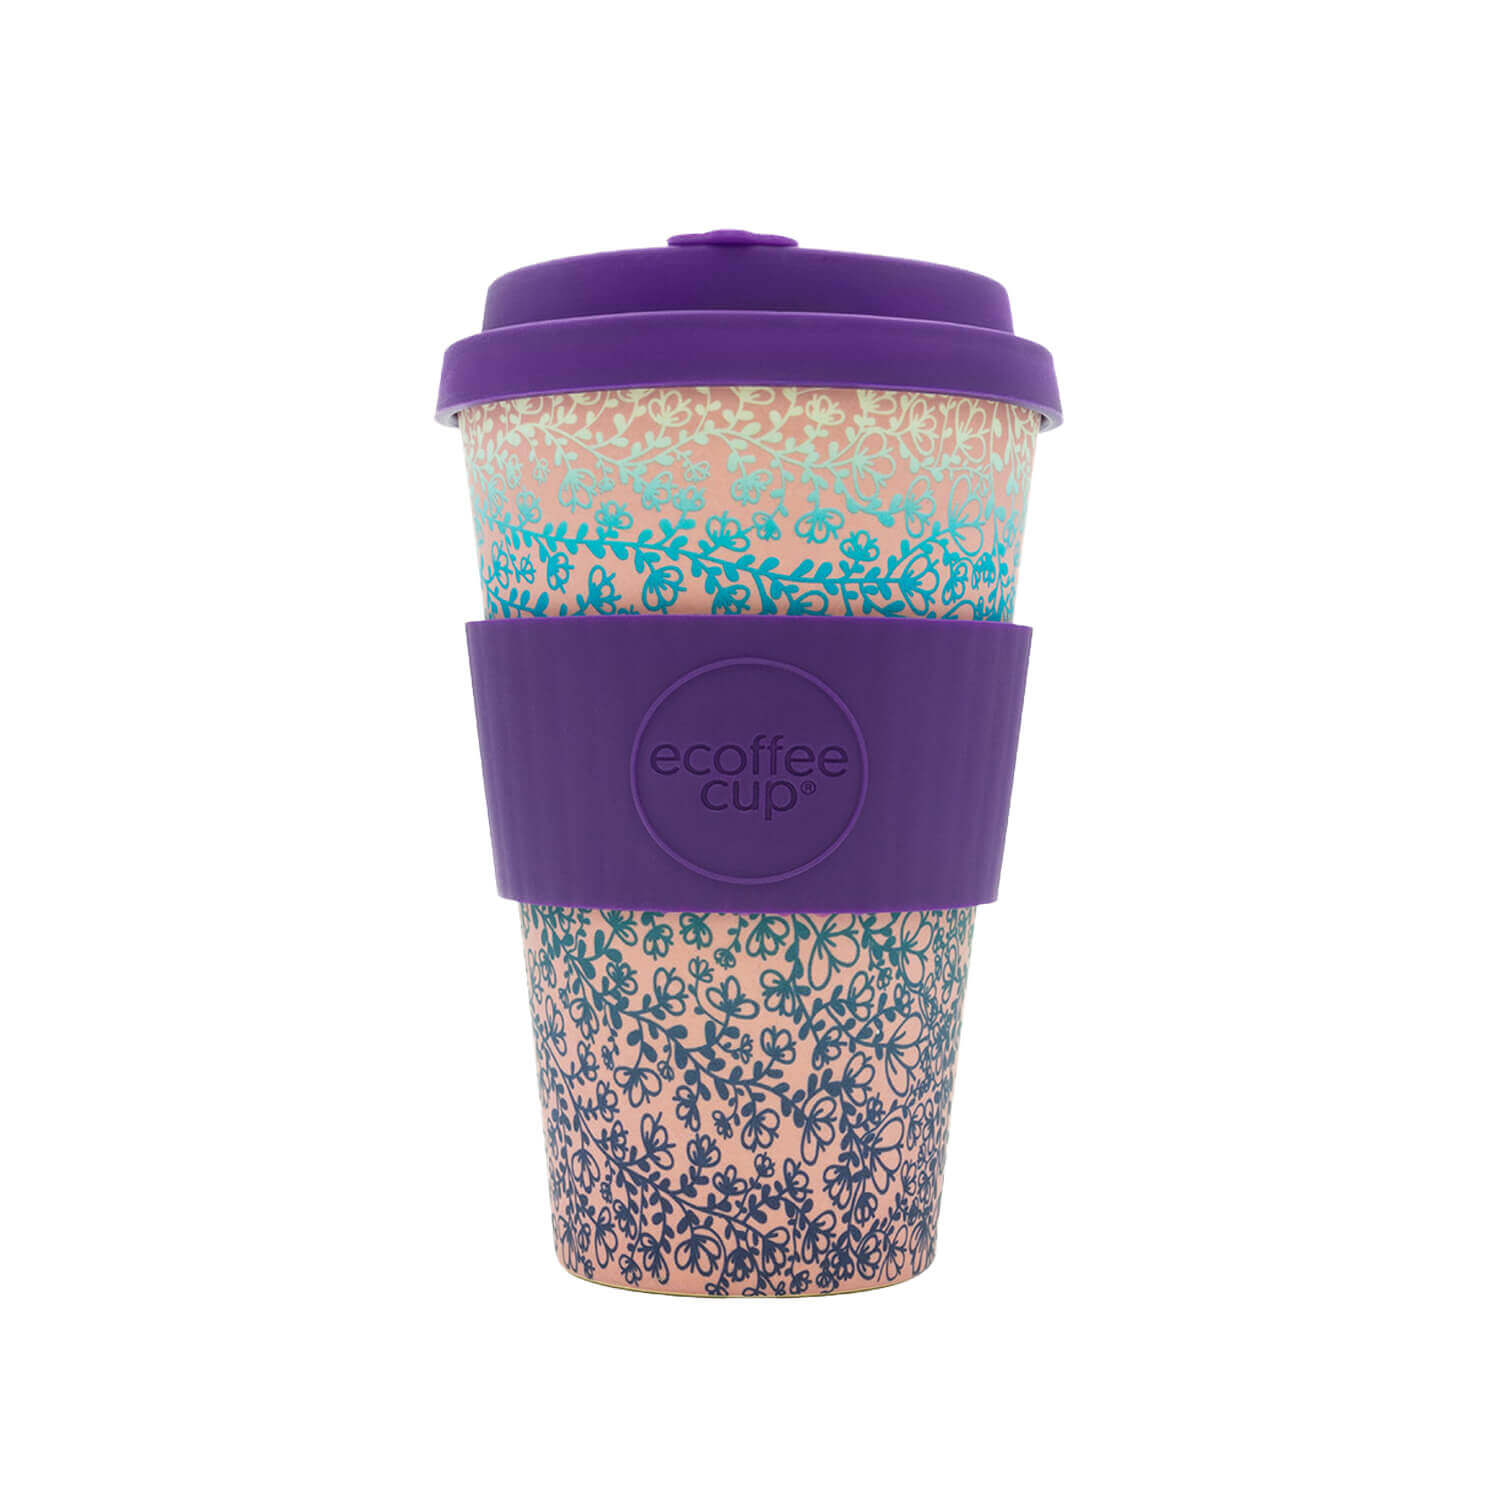 Ecoffee Cup - Miscoso Secondo - 400 Ml